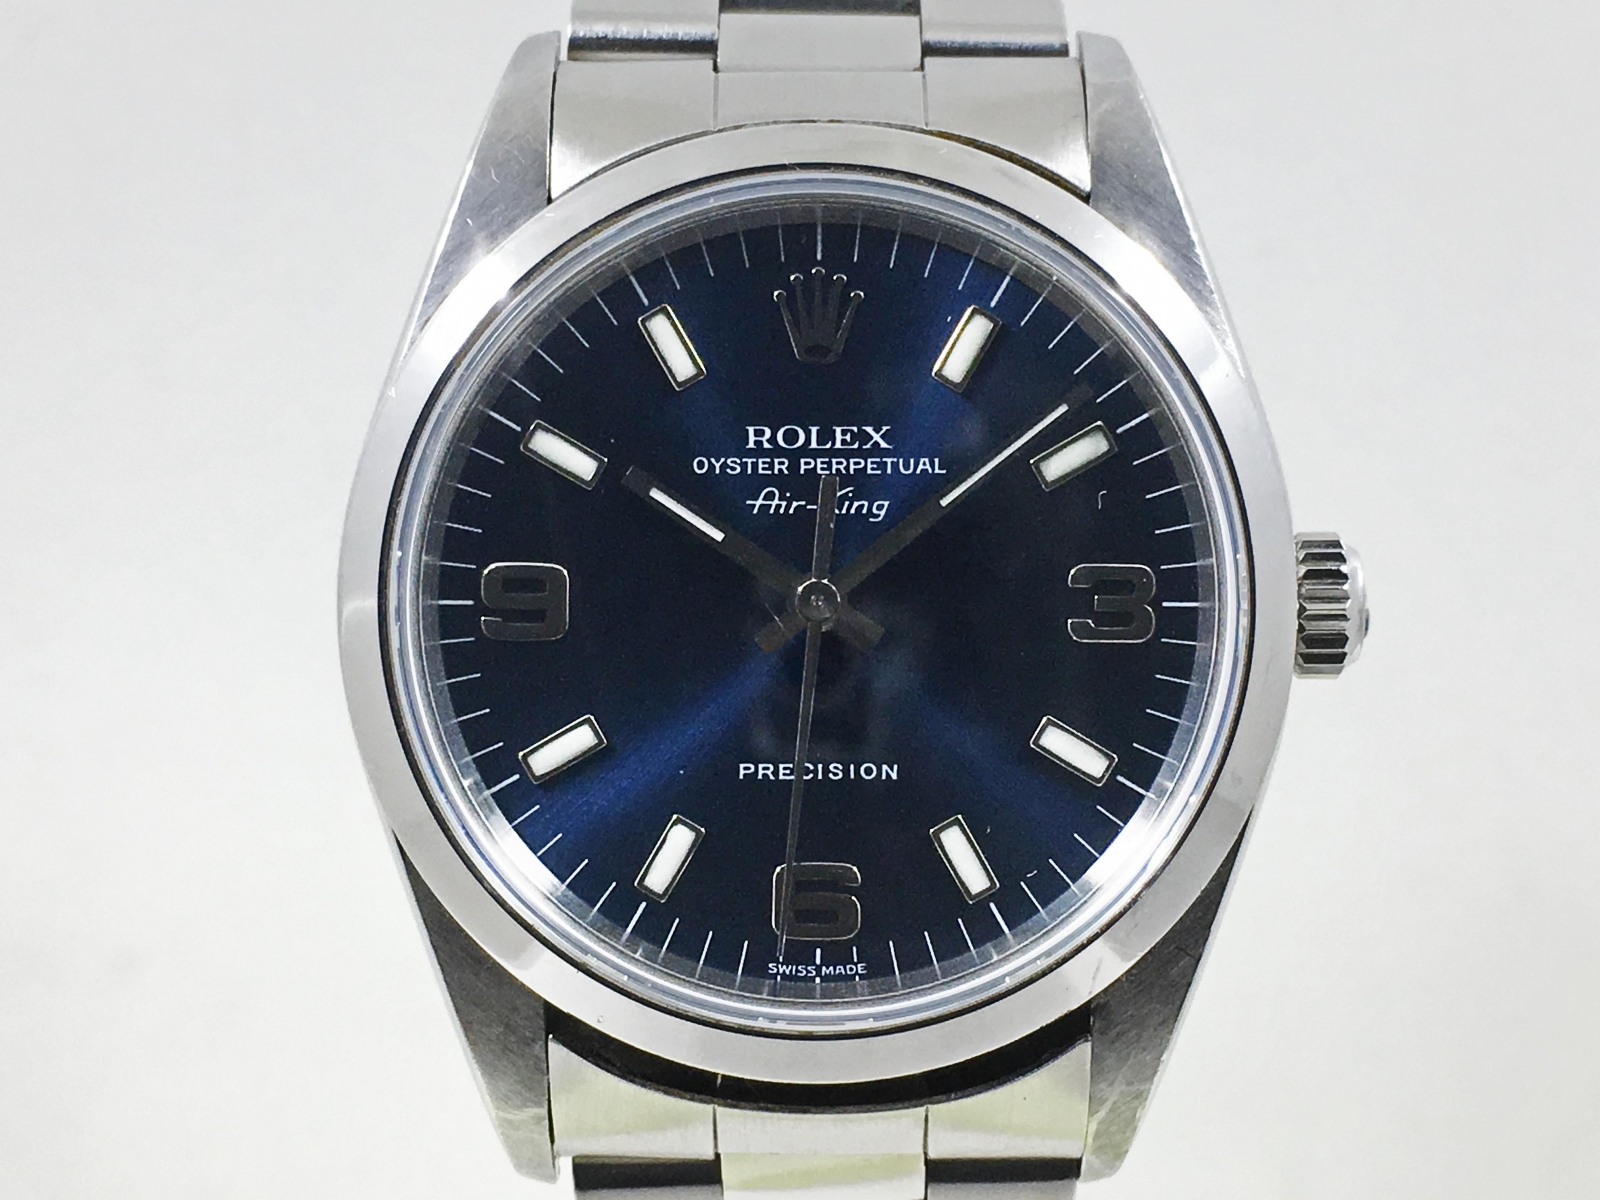 best sneakers 9561d a60bd ホーム :: トケマー :: ROLEX / ロレックス :: エアキング :: 【現金のみ】ロレックス 14000 エアキング Aシリアル  ブルー文字盤 保証書あり 中古品【トケマー宅配出品(出品代行)】201712036